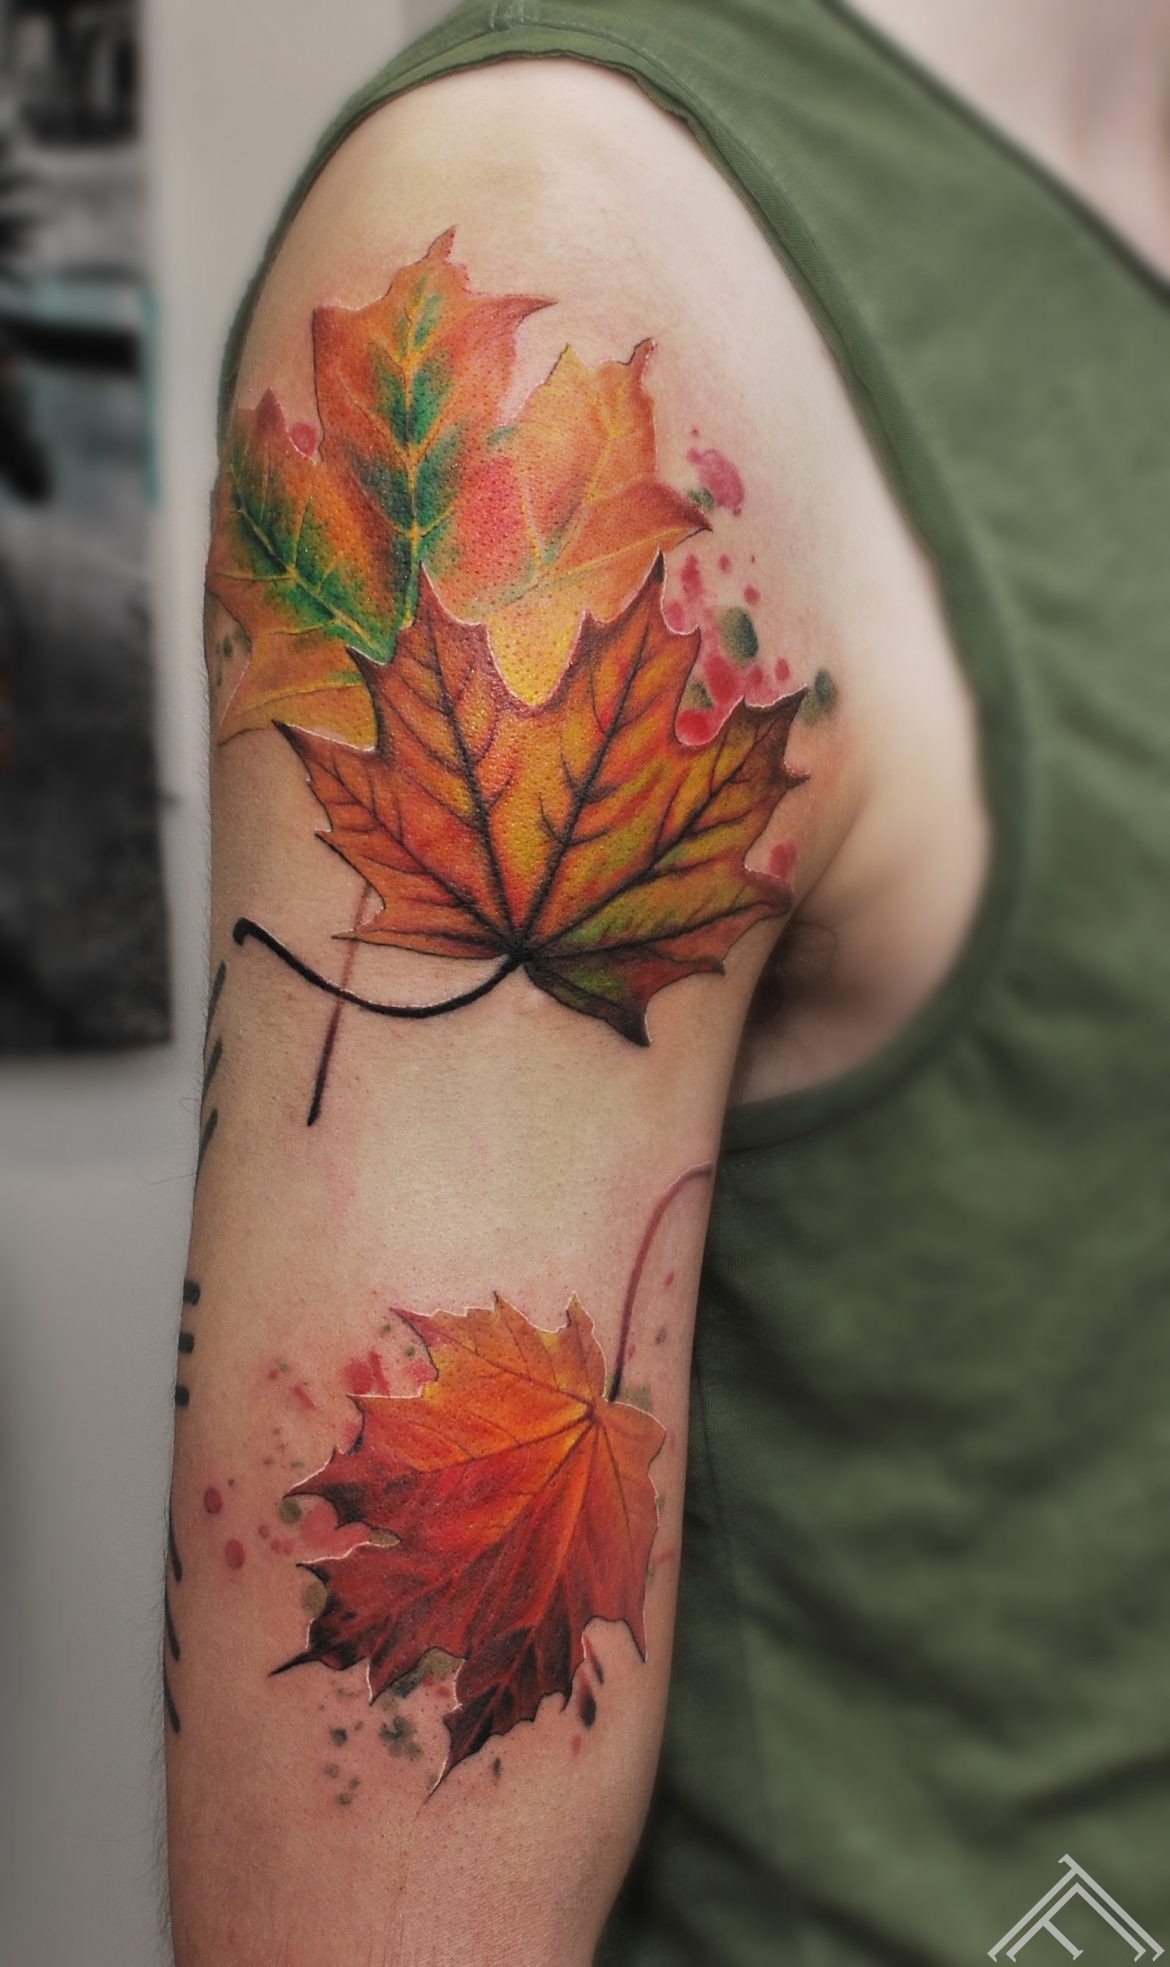 maple-leaf-autumn-tattoofrequency-tattoo-riga-janisanderson